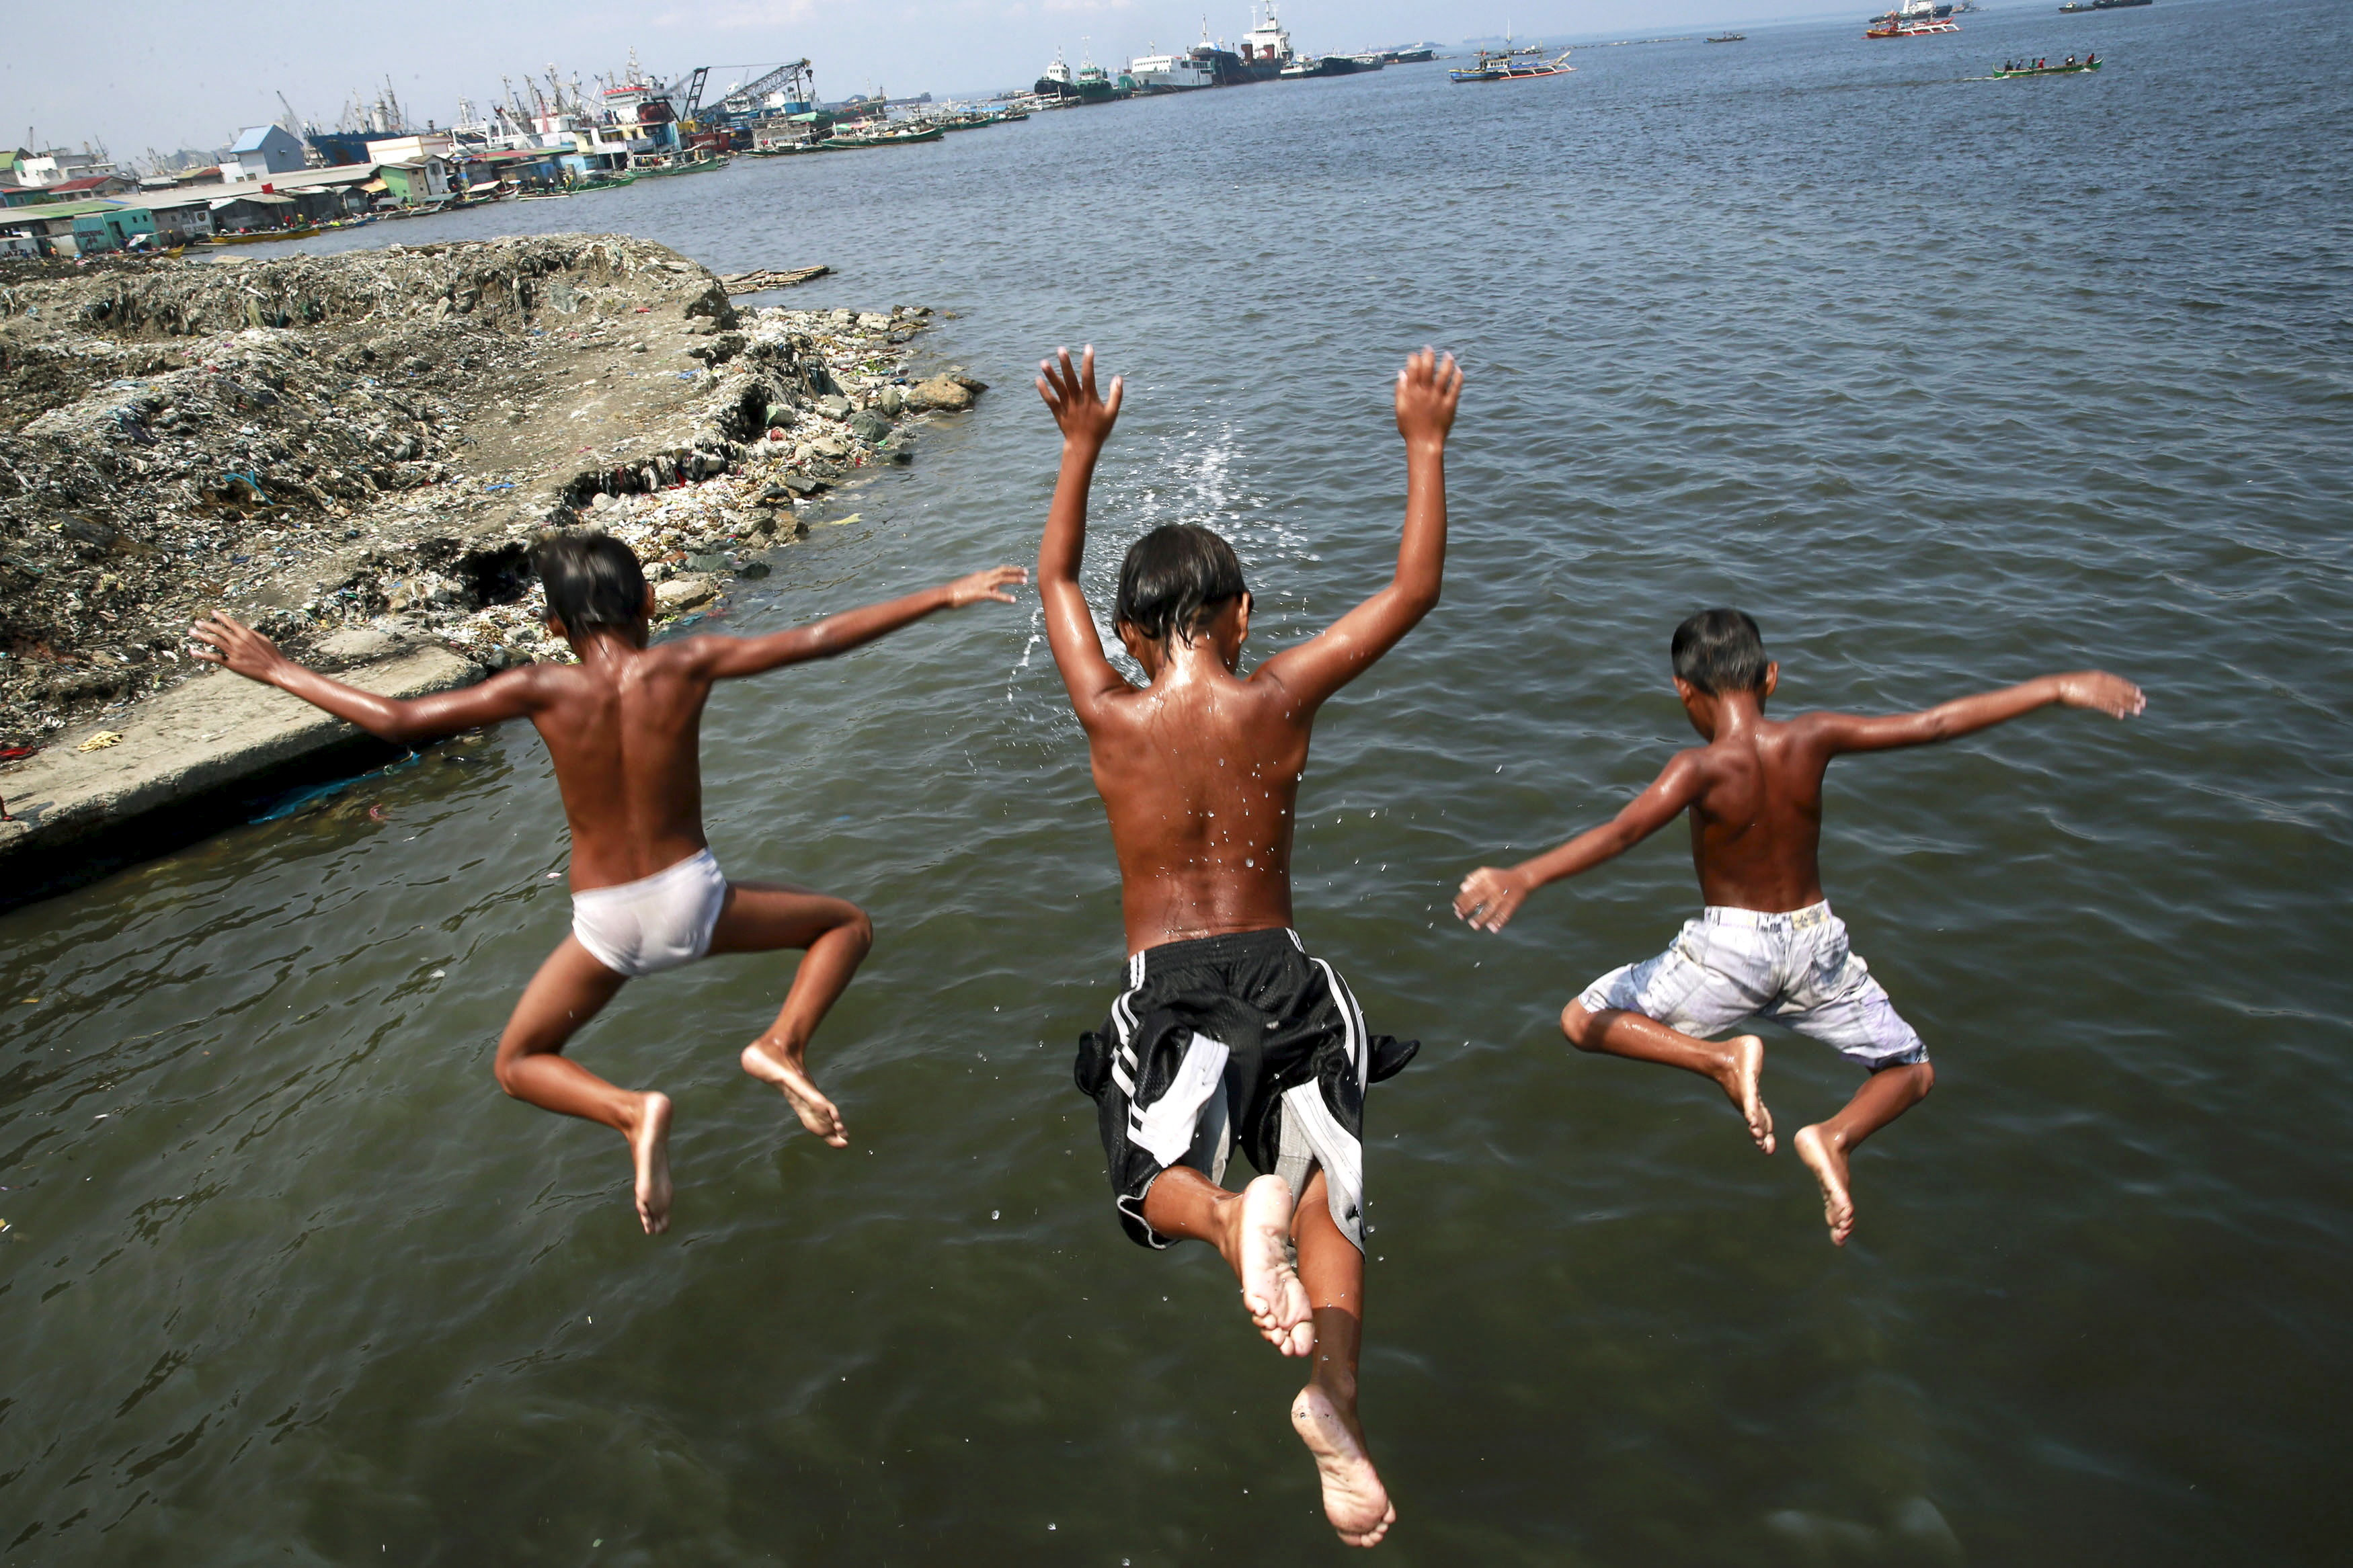 Boys dives into murky waters at a fishing town in Navotas City, north of Manila, Philippines August 4, 2015.       REUTERS/Romeo Ranoco        TPX IMAGES OF THE DAY      - GF20000012907